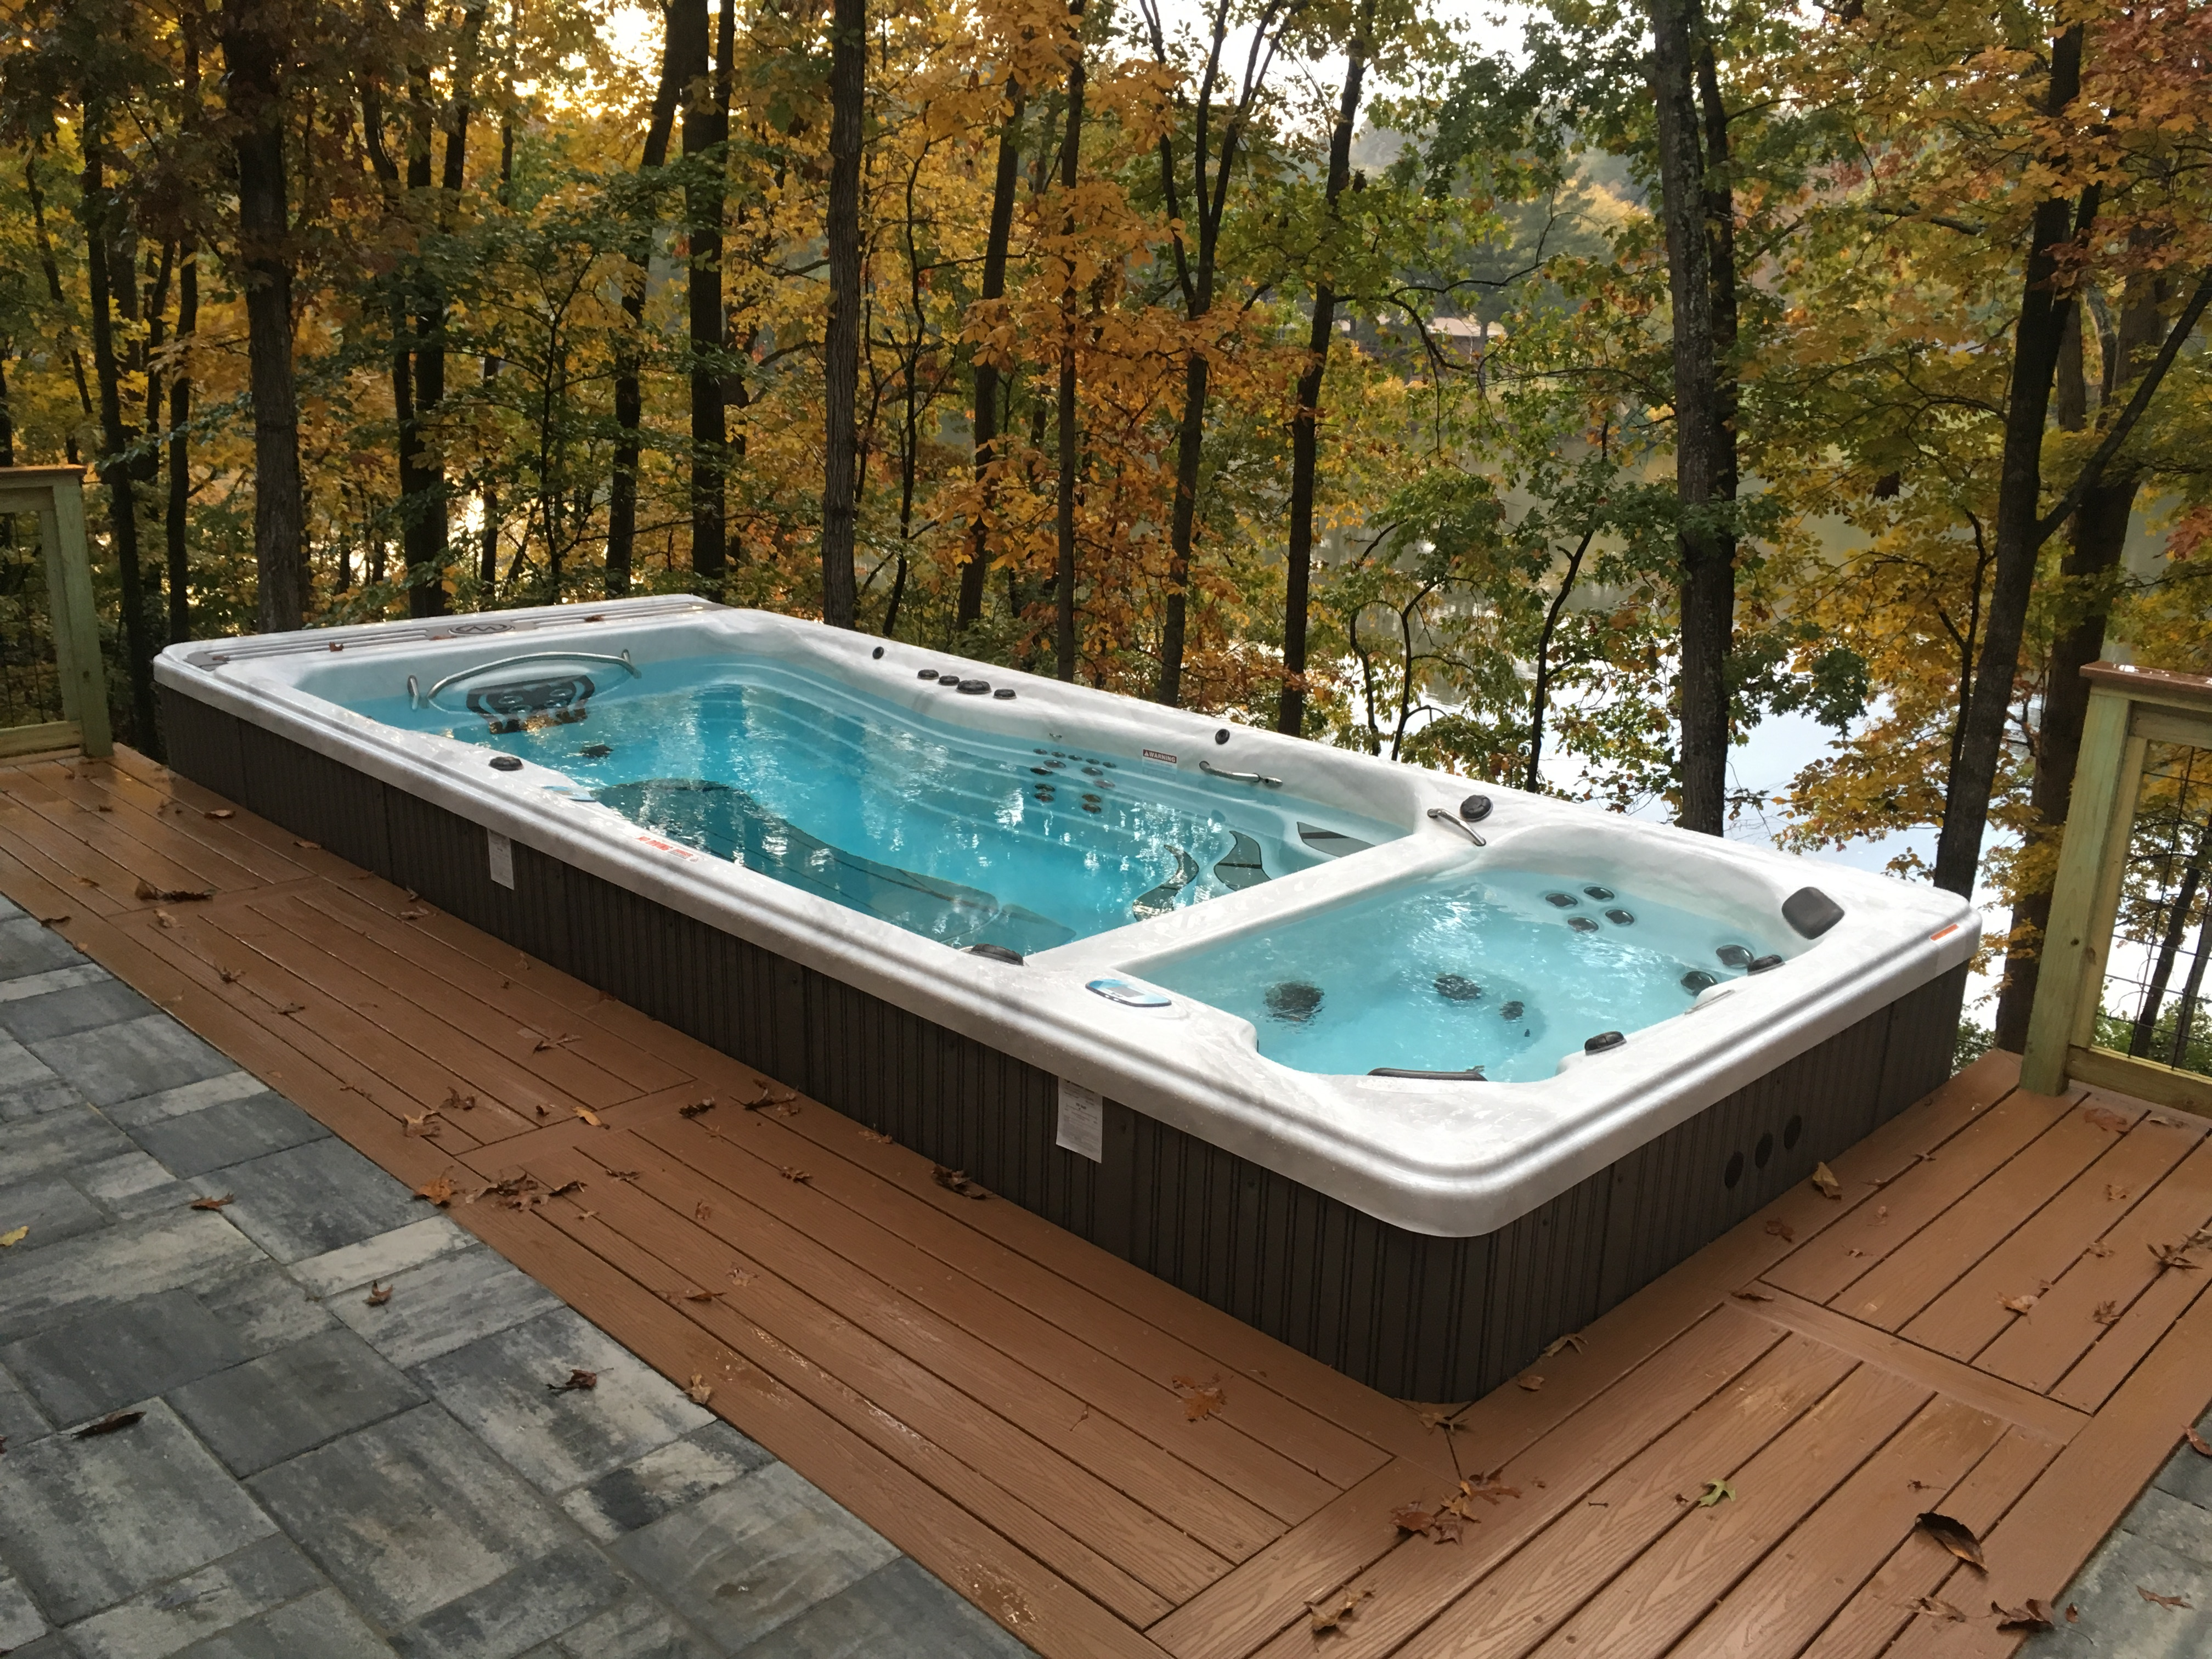 Outdoor Whirlpool Cheap Hot Tubs Saunas Swim Spas Game Tables Atlanta Spa Leisure